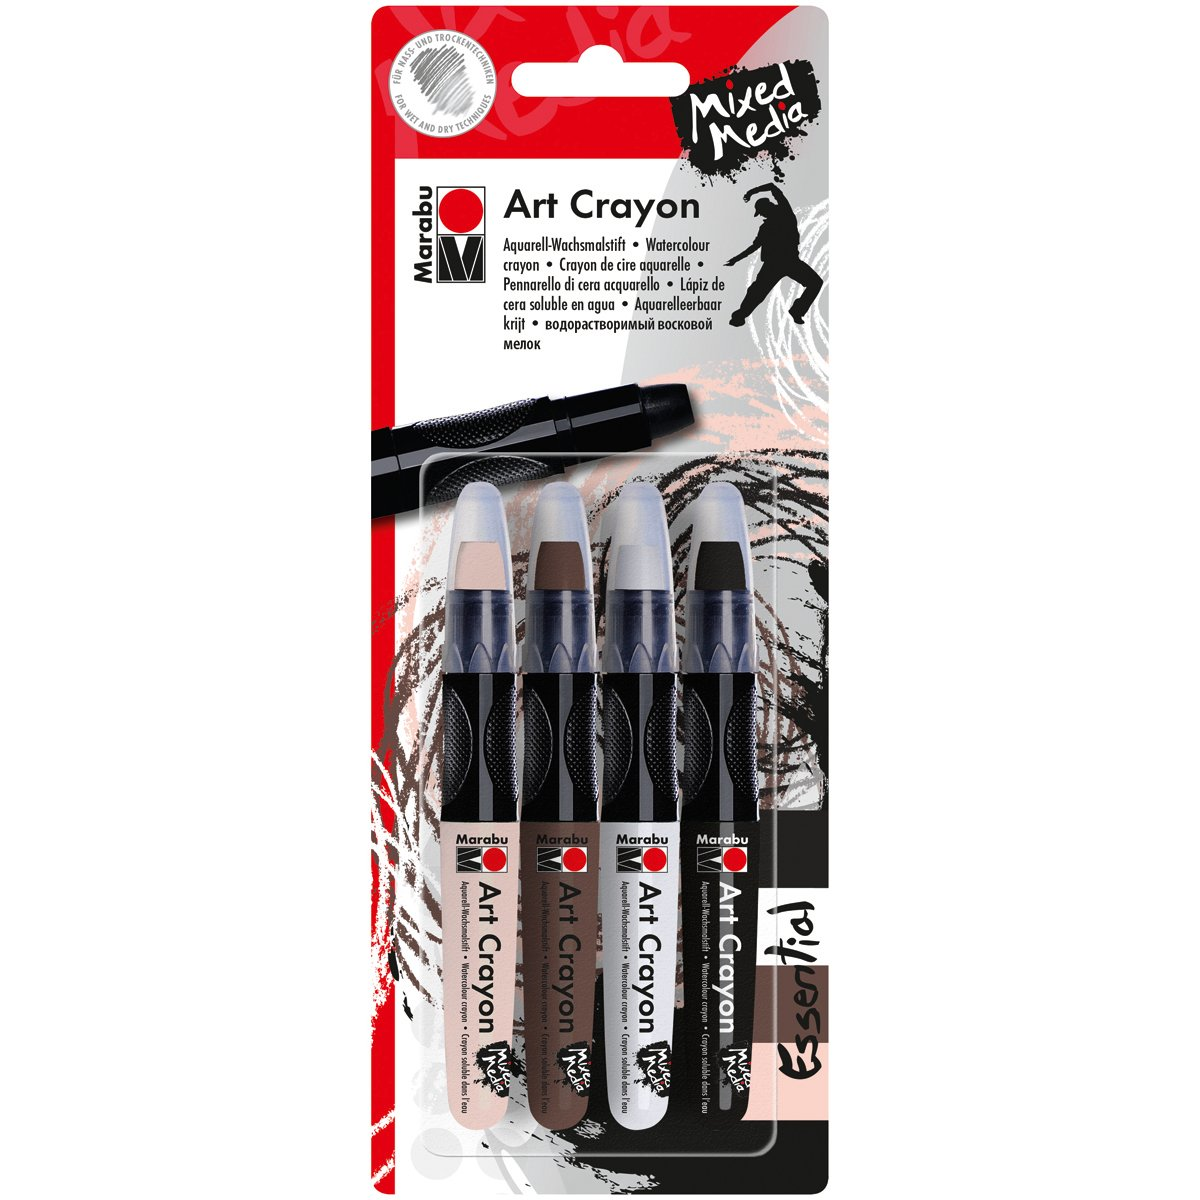 Marabu 1409000-203 Creative Art Crayon Set 4/Pkg-Essentials-Flesh, Cocoa, White & Black